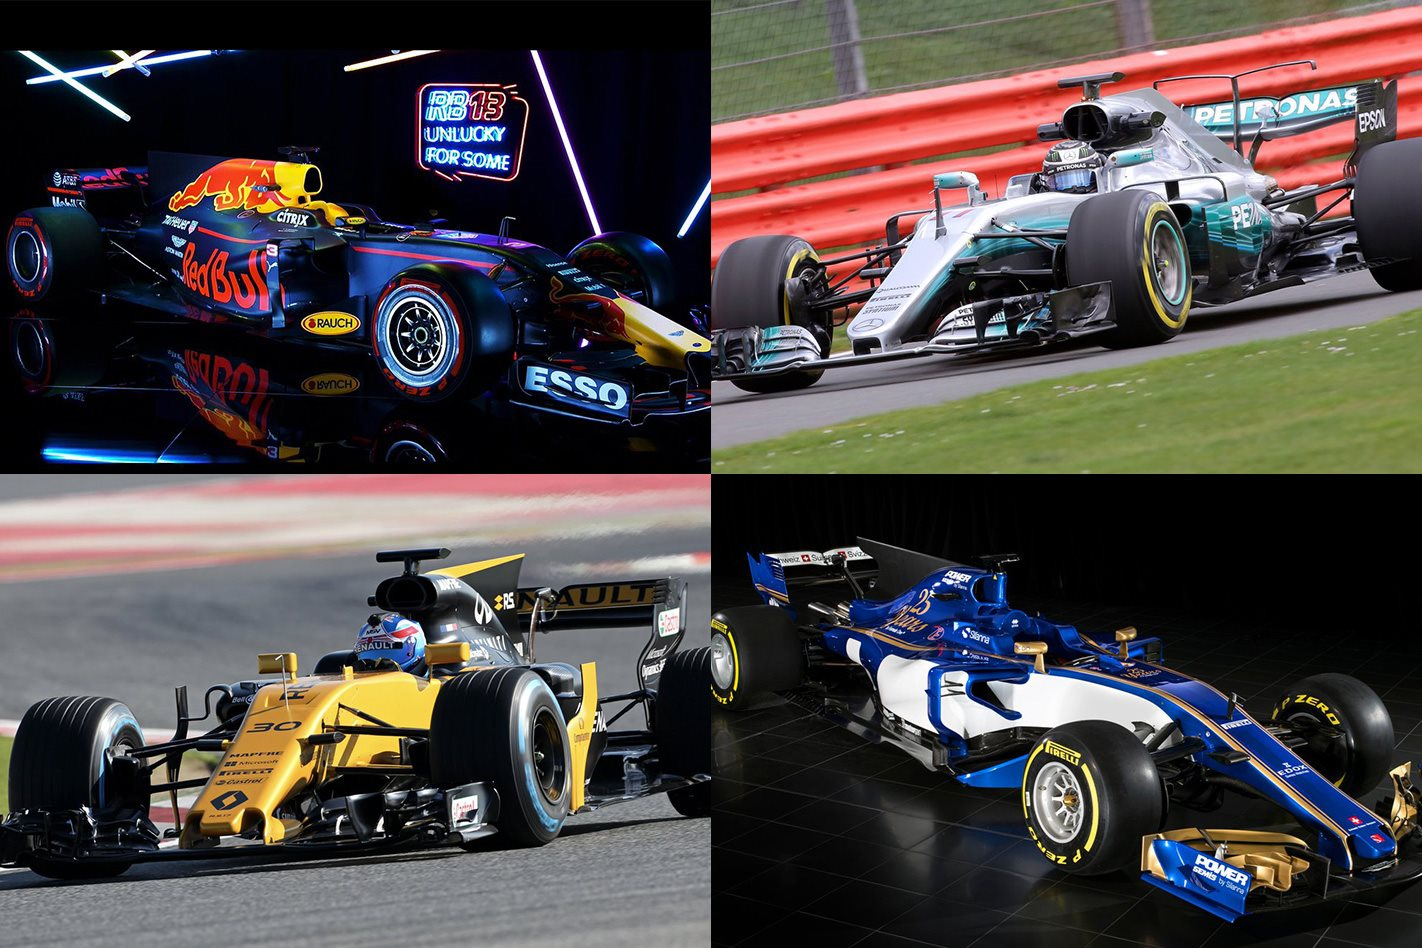 Magnificent F1 Cars For Sale Contemporary - Classic Cars Ideas ...